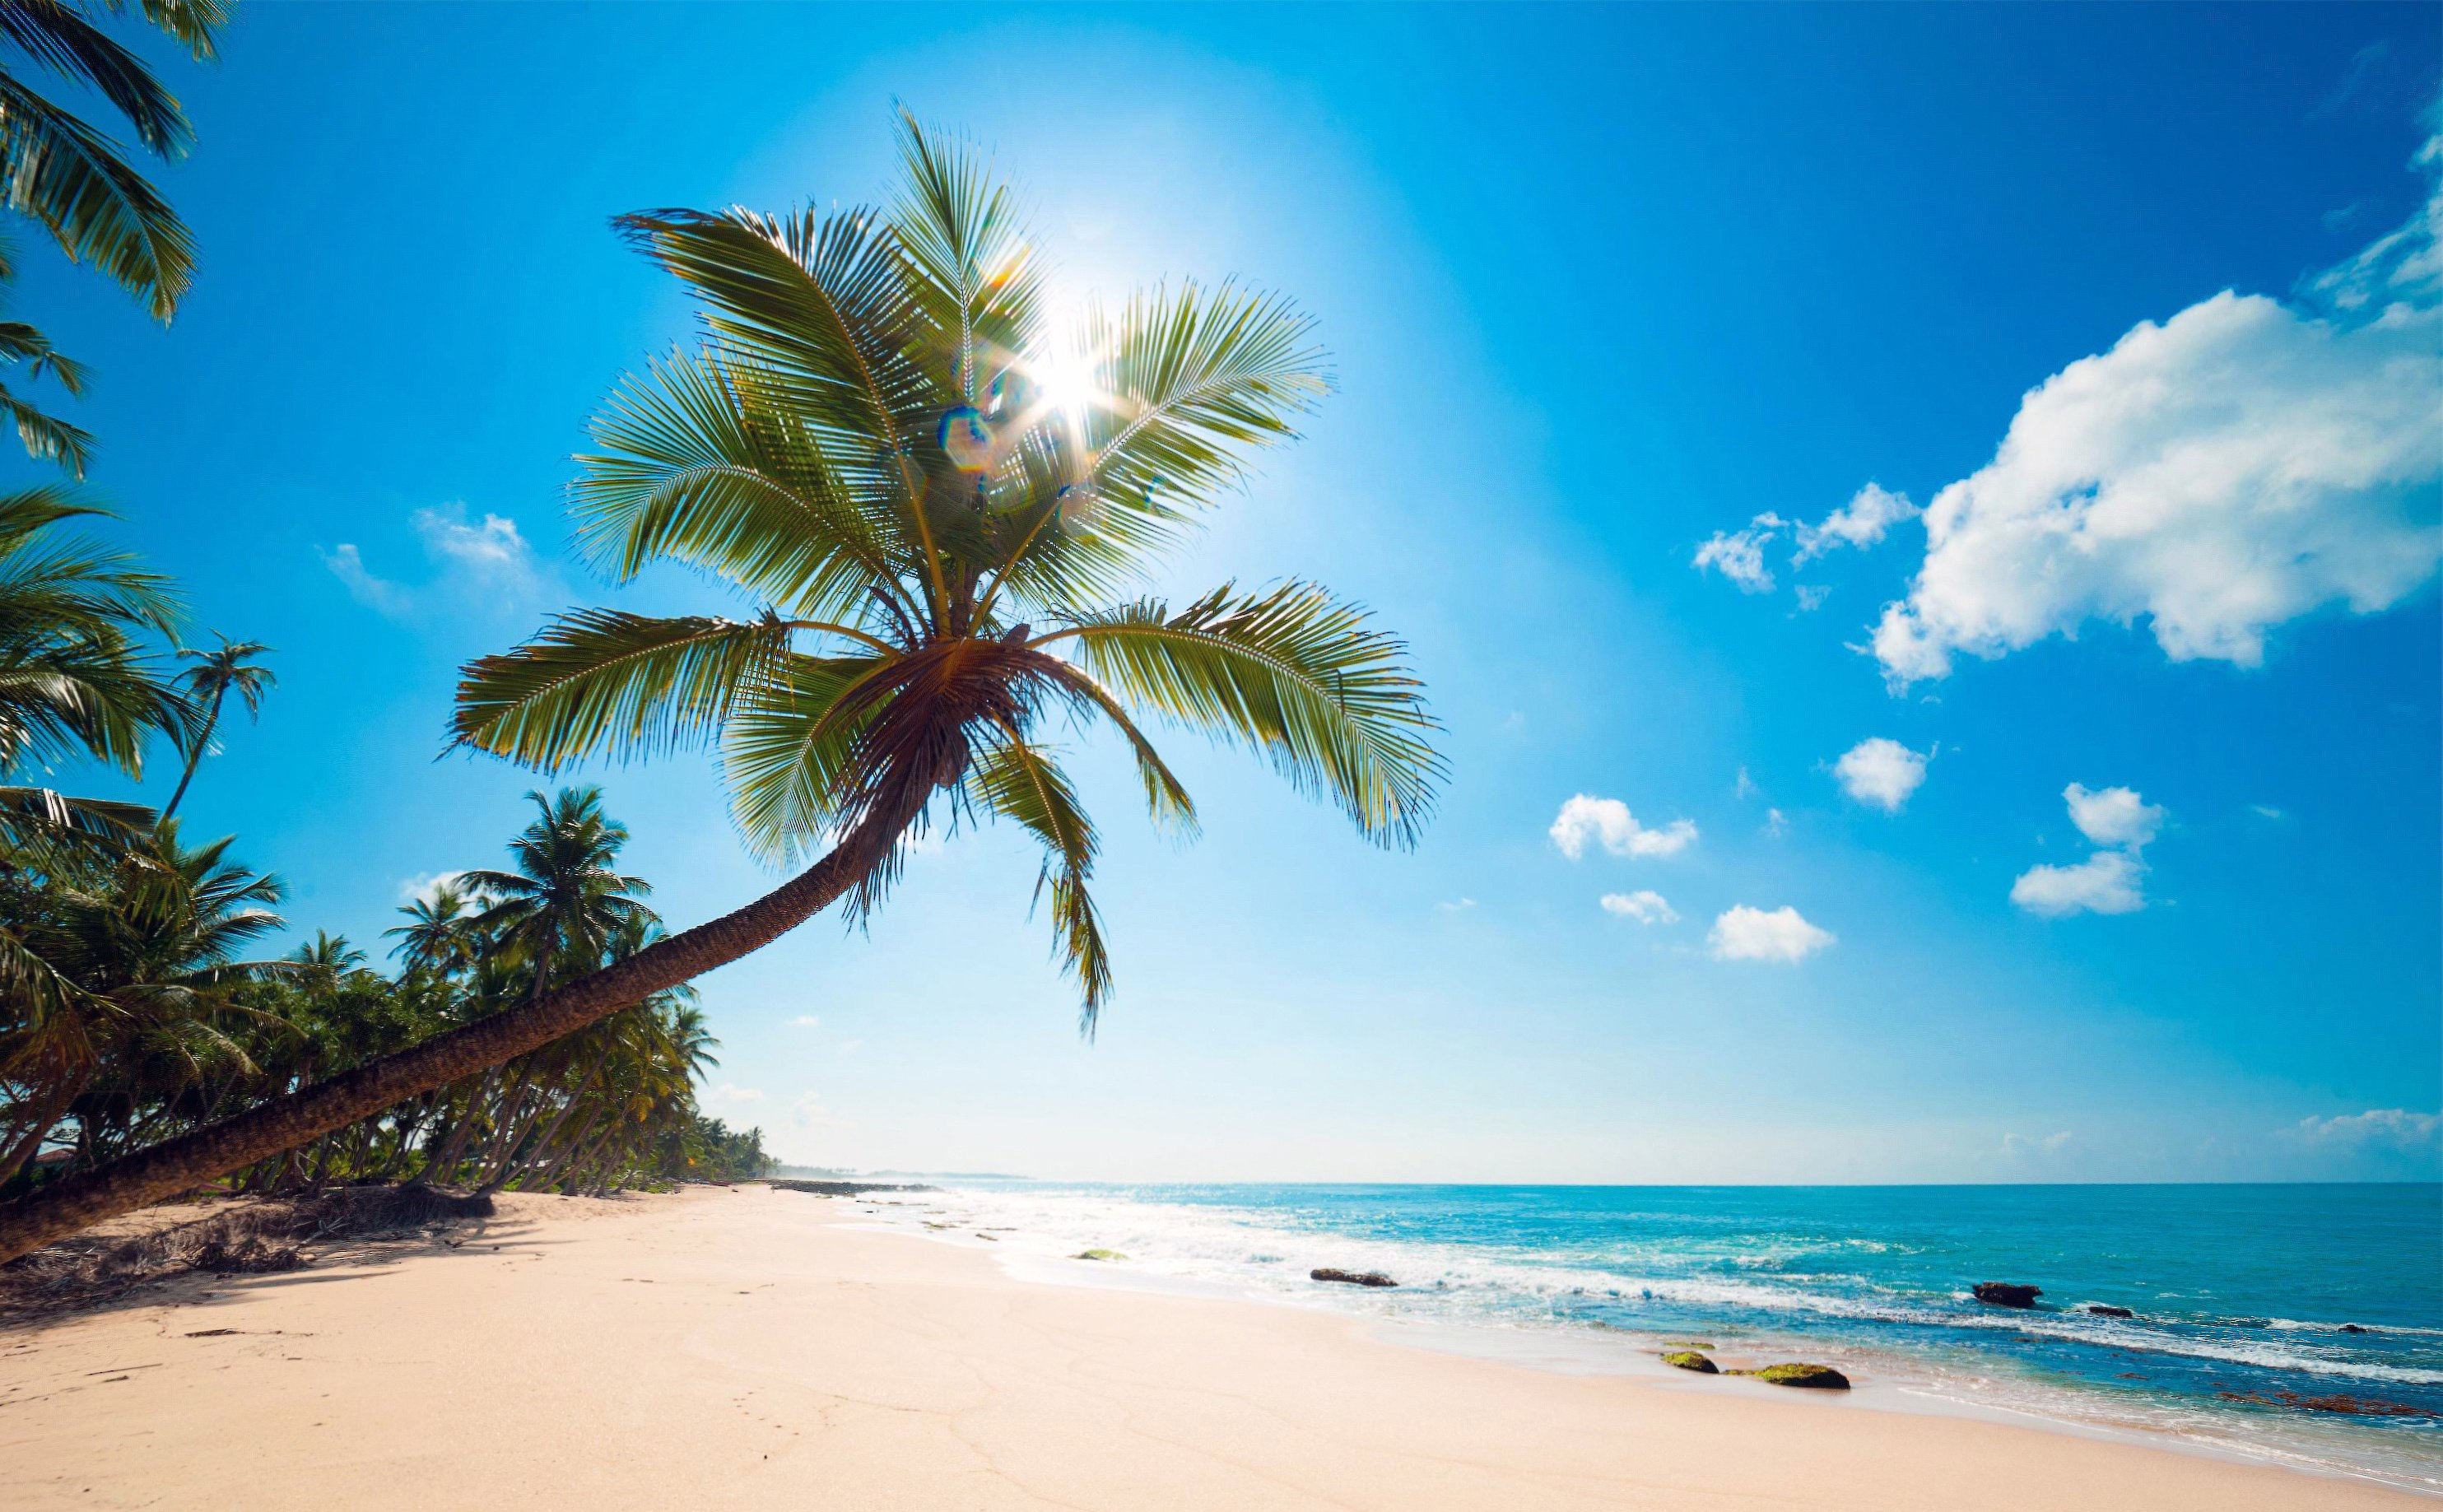 Tropical Beach Paradise 5K Wallpapers | HD Wallpapers